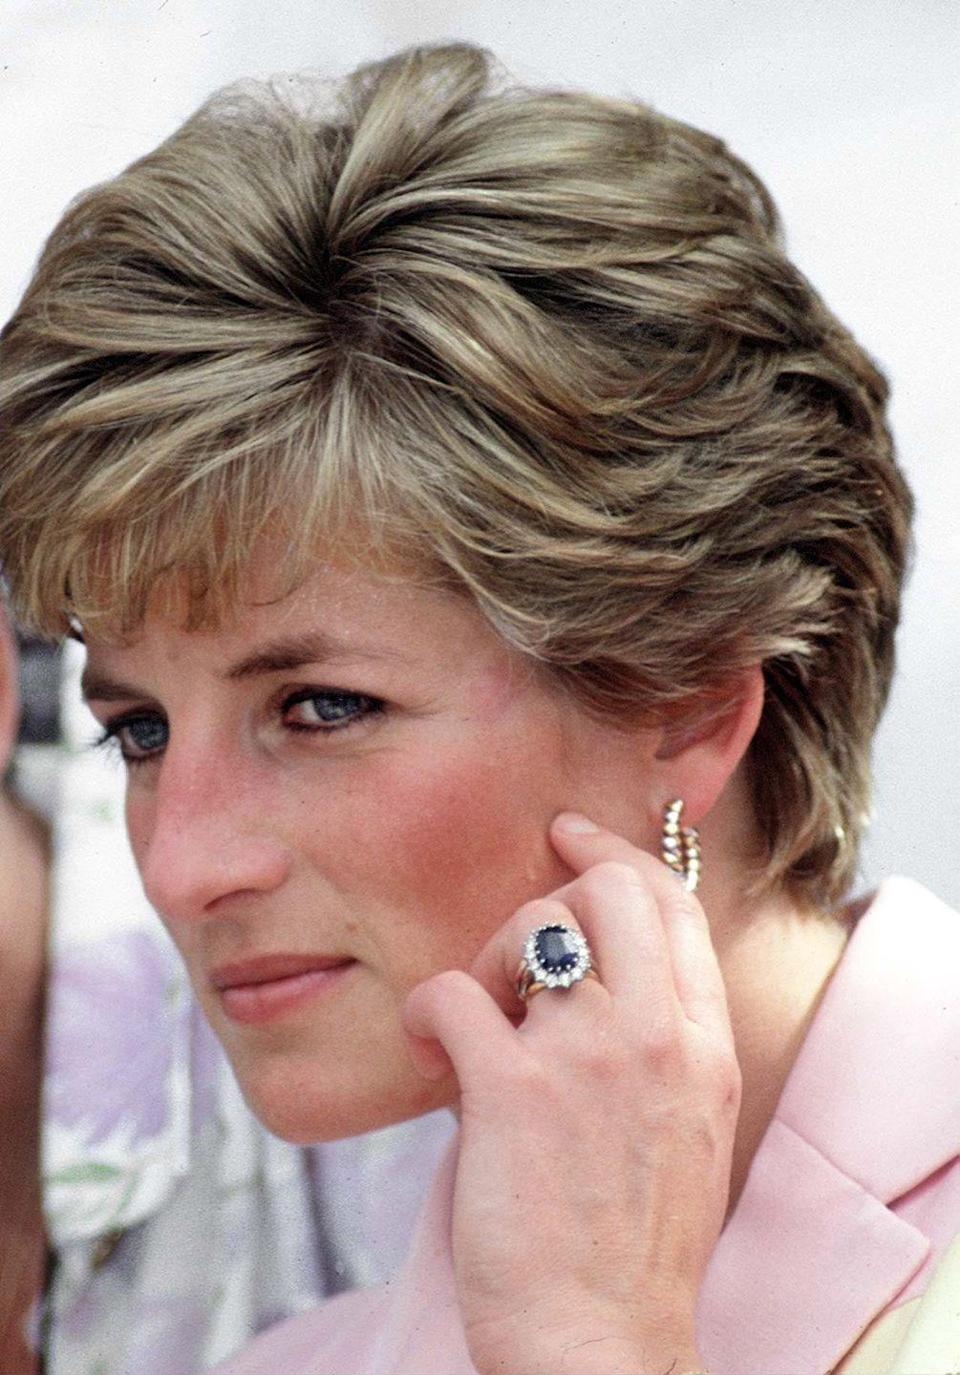 """<p>The ring was a hit with the public and caused a huge trend in colored stone engagement rings. The ring, set in white gold, <a href=""""https://www.goodhousekeeping.com/life/a22727712/princess-diana-engagement-ring/"""" rel=""""nofollow noopener"""" target=""""_blank"""" data-ylk=""""slk:featured an 12-carat oval Ceylon sapphire"""" class=""""link rapid-noclick-resp"""">featured an 12-carat oval Ceylon sapphire</a> with cluster diamonds around it. </p>"""